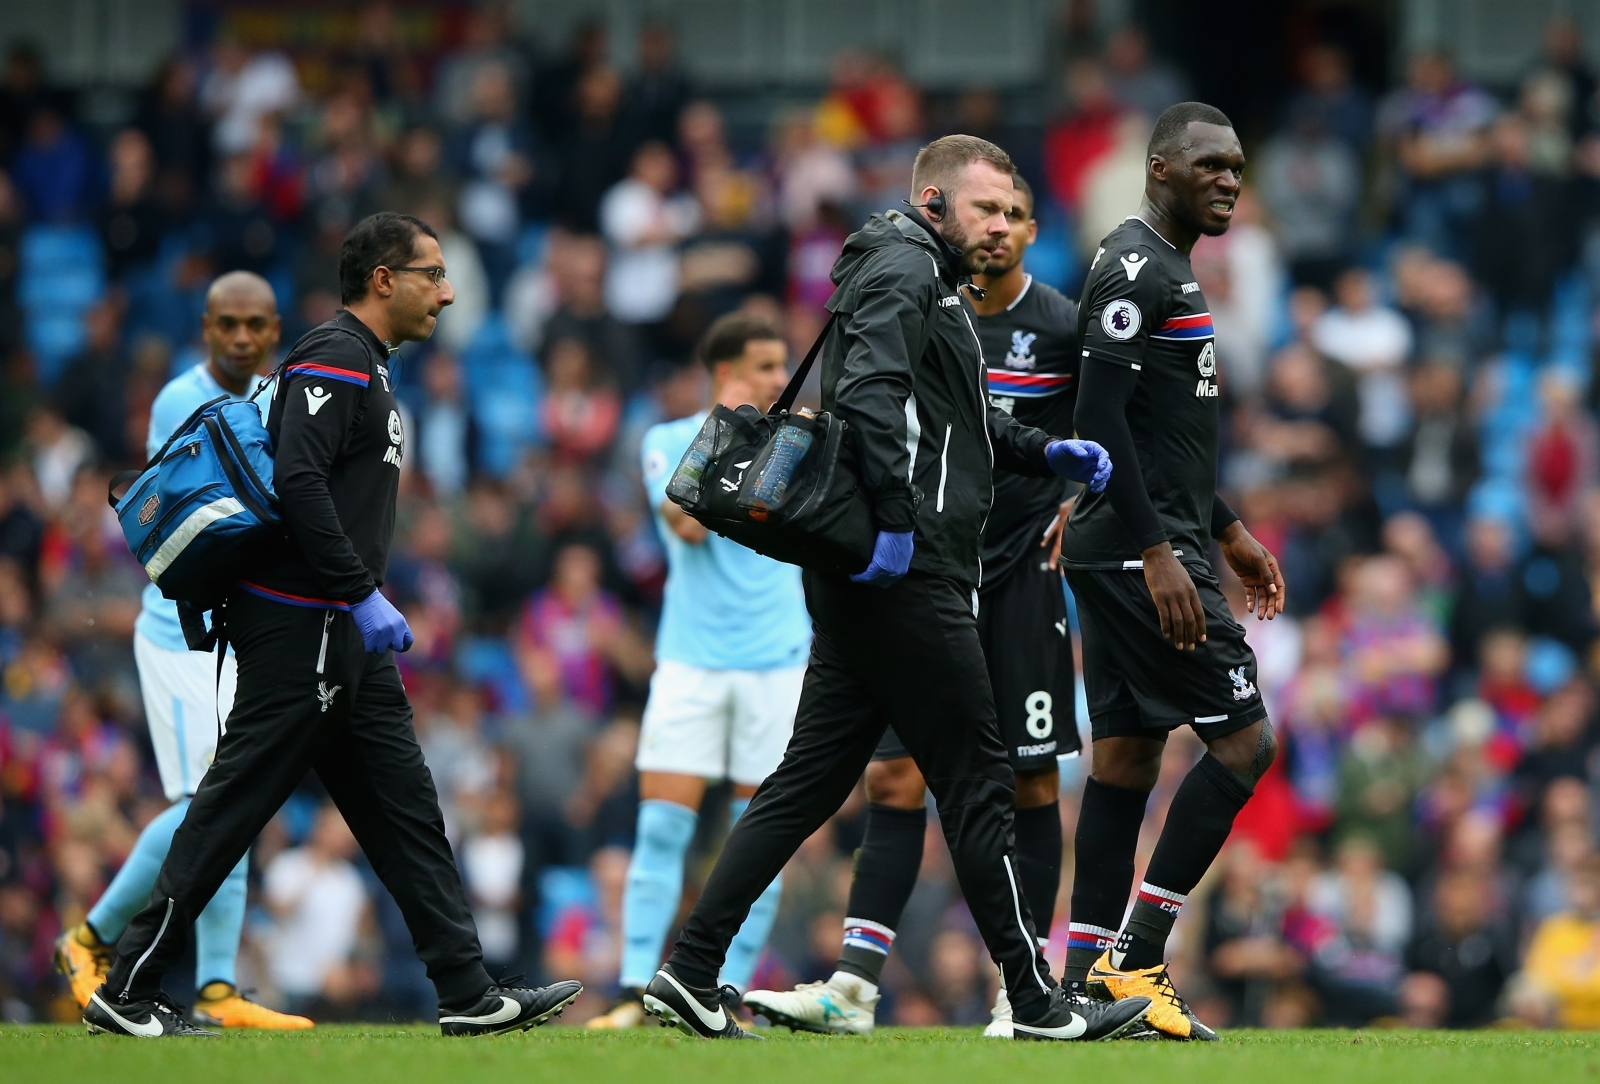 EPL 2017/18 Manchester City 5-0 Crystal Palace: 5 talking points